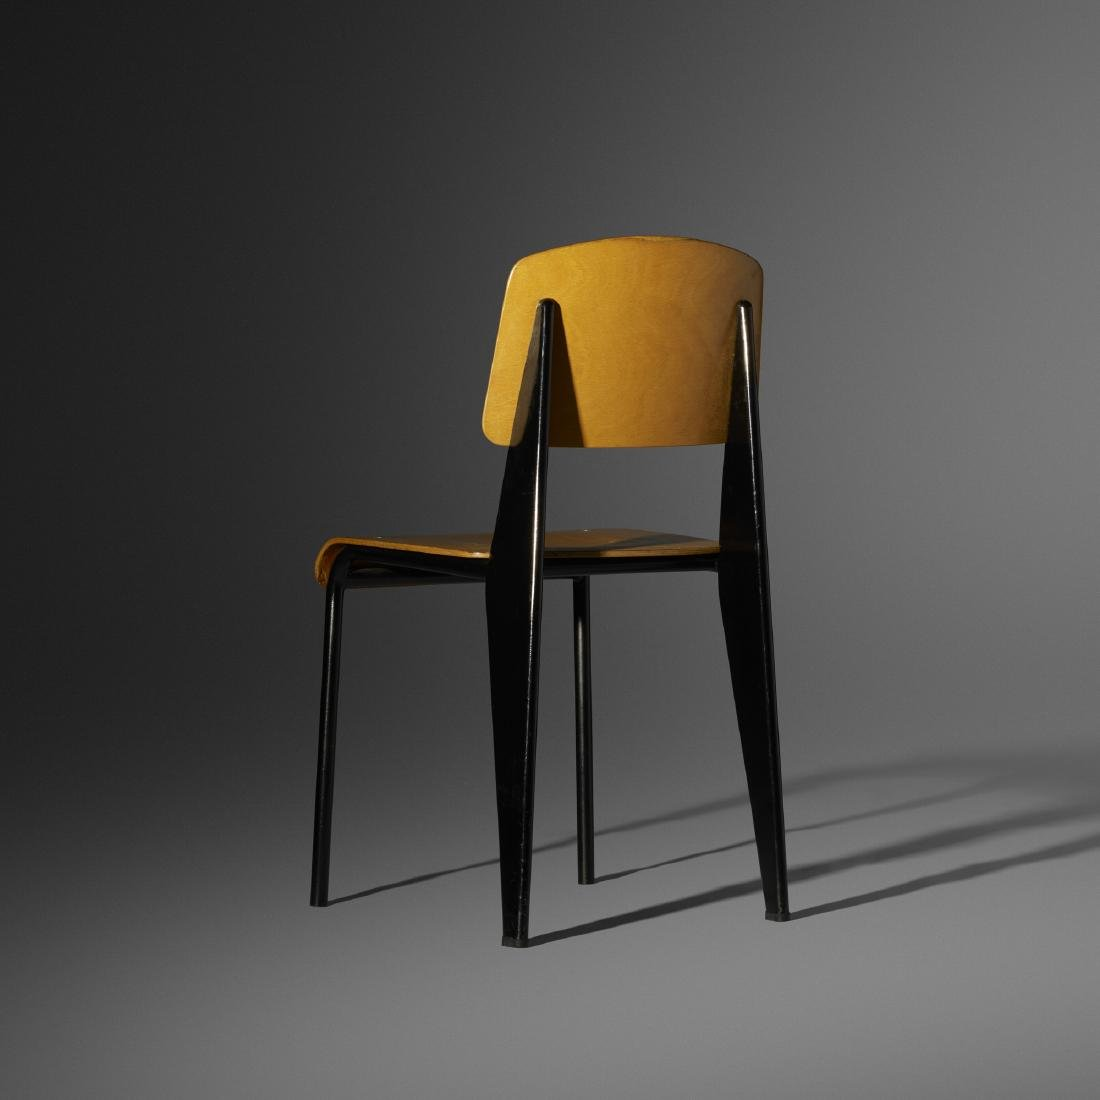 Jean Prouve, 'Semi-Metal' chair, no. 305